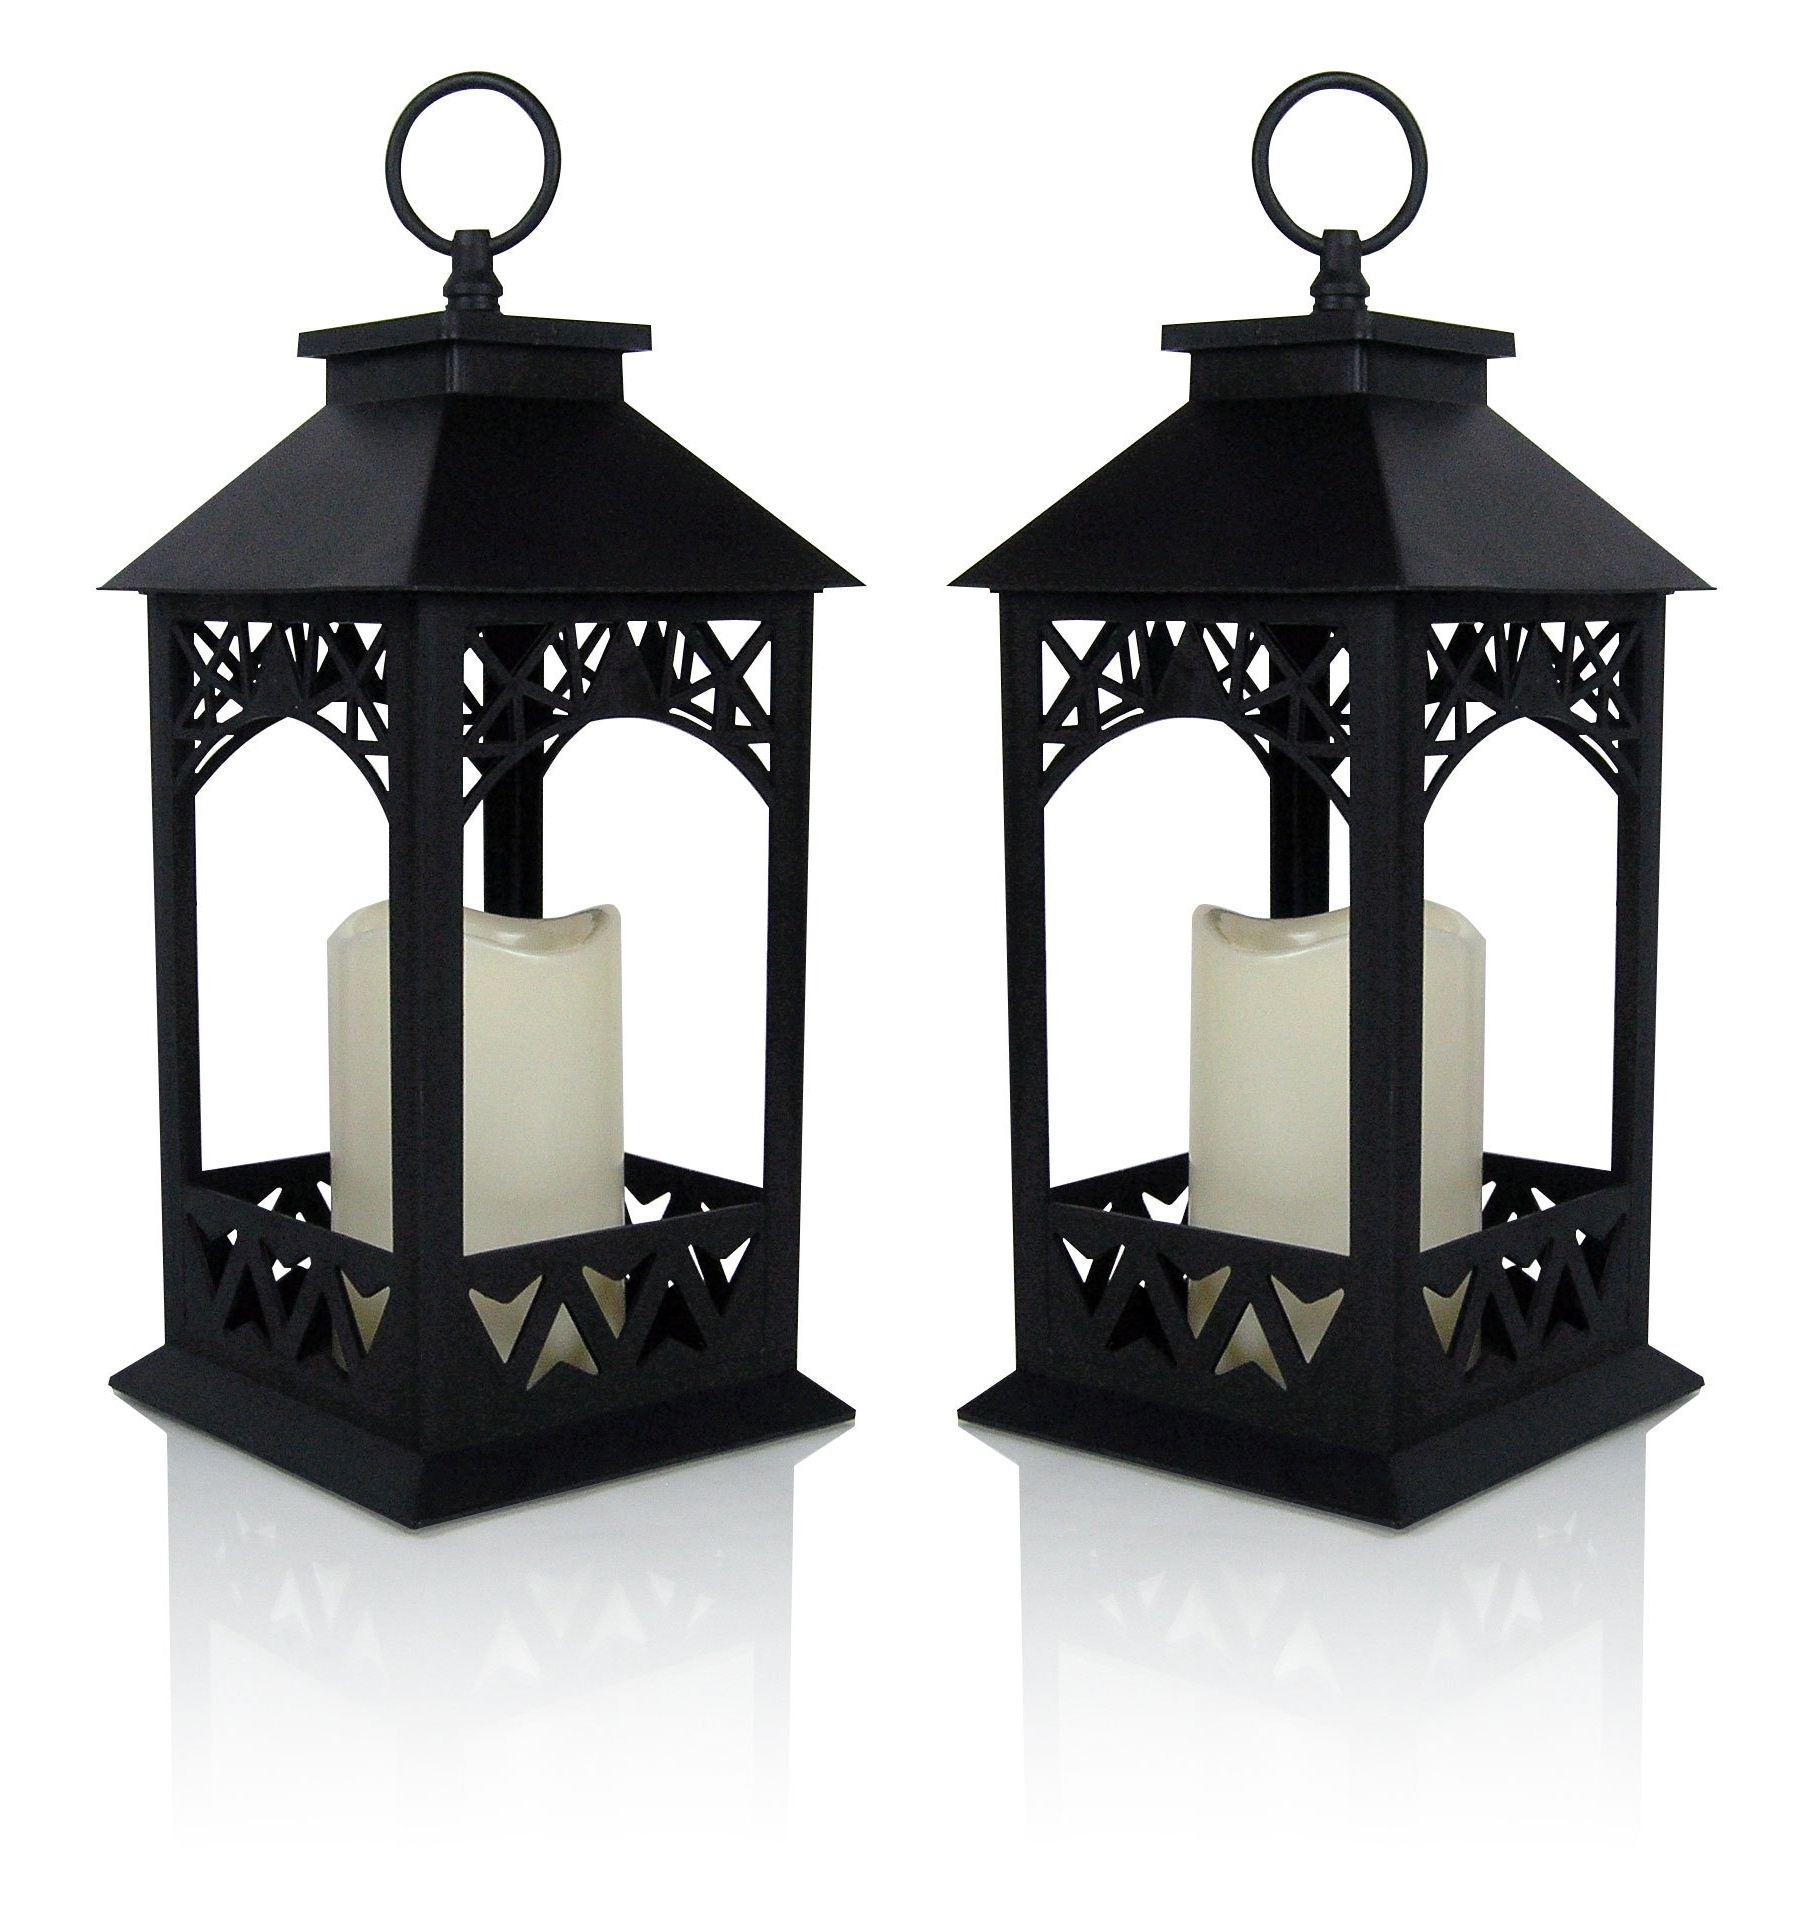 Cheap Outdoor Lanterns Candle, Find Outdoor Lanterns Candle Deals On Intended For Widely Used Outdoor Timer Lanterns (View 6 of 20)